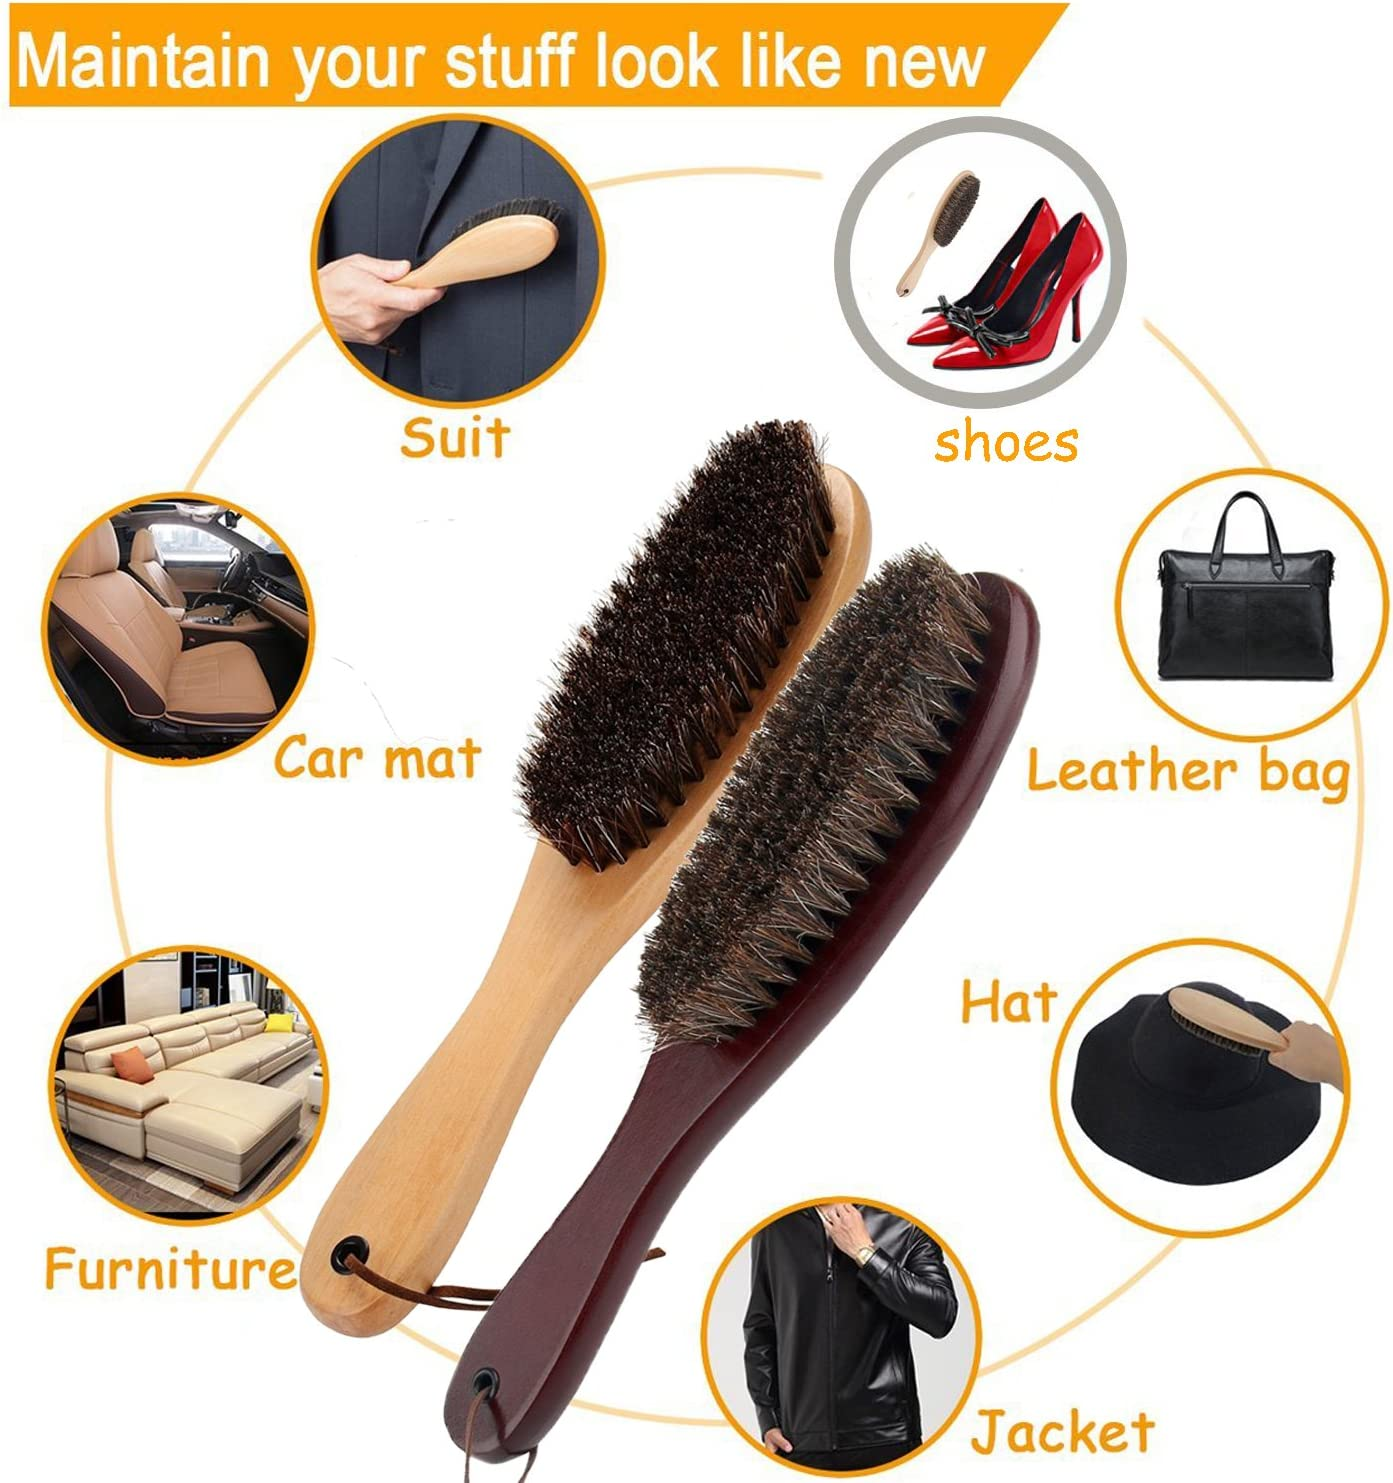 Cokaka Clothes Brush Garment Brush Lint Remover Brush with Genuine Soft Horsehair and Wooden Handle for Coat Men Suits Shoes Jacket Furniture Car Mat and Pet hair 1-Pack walnut wood